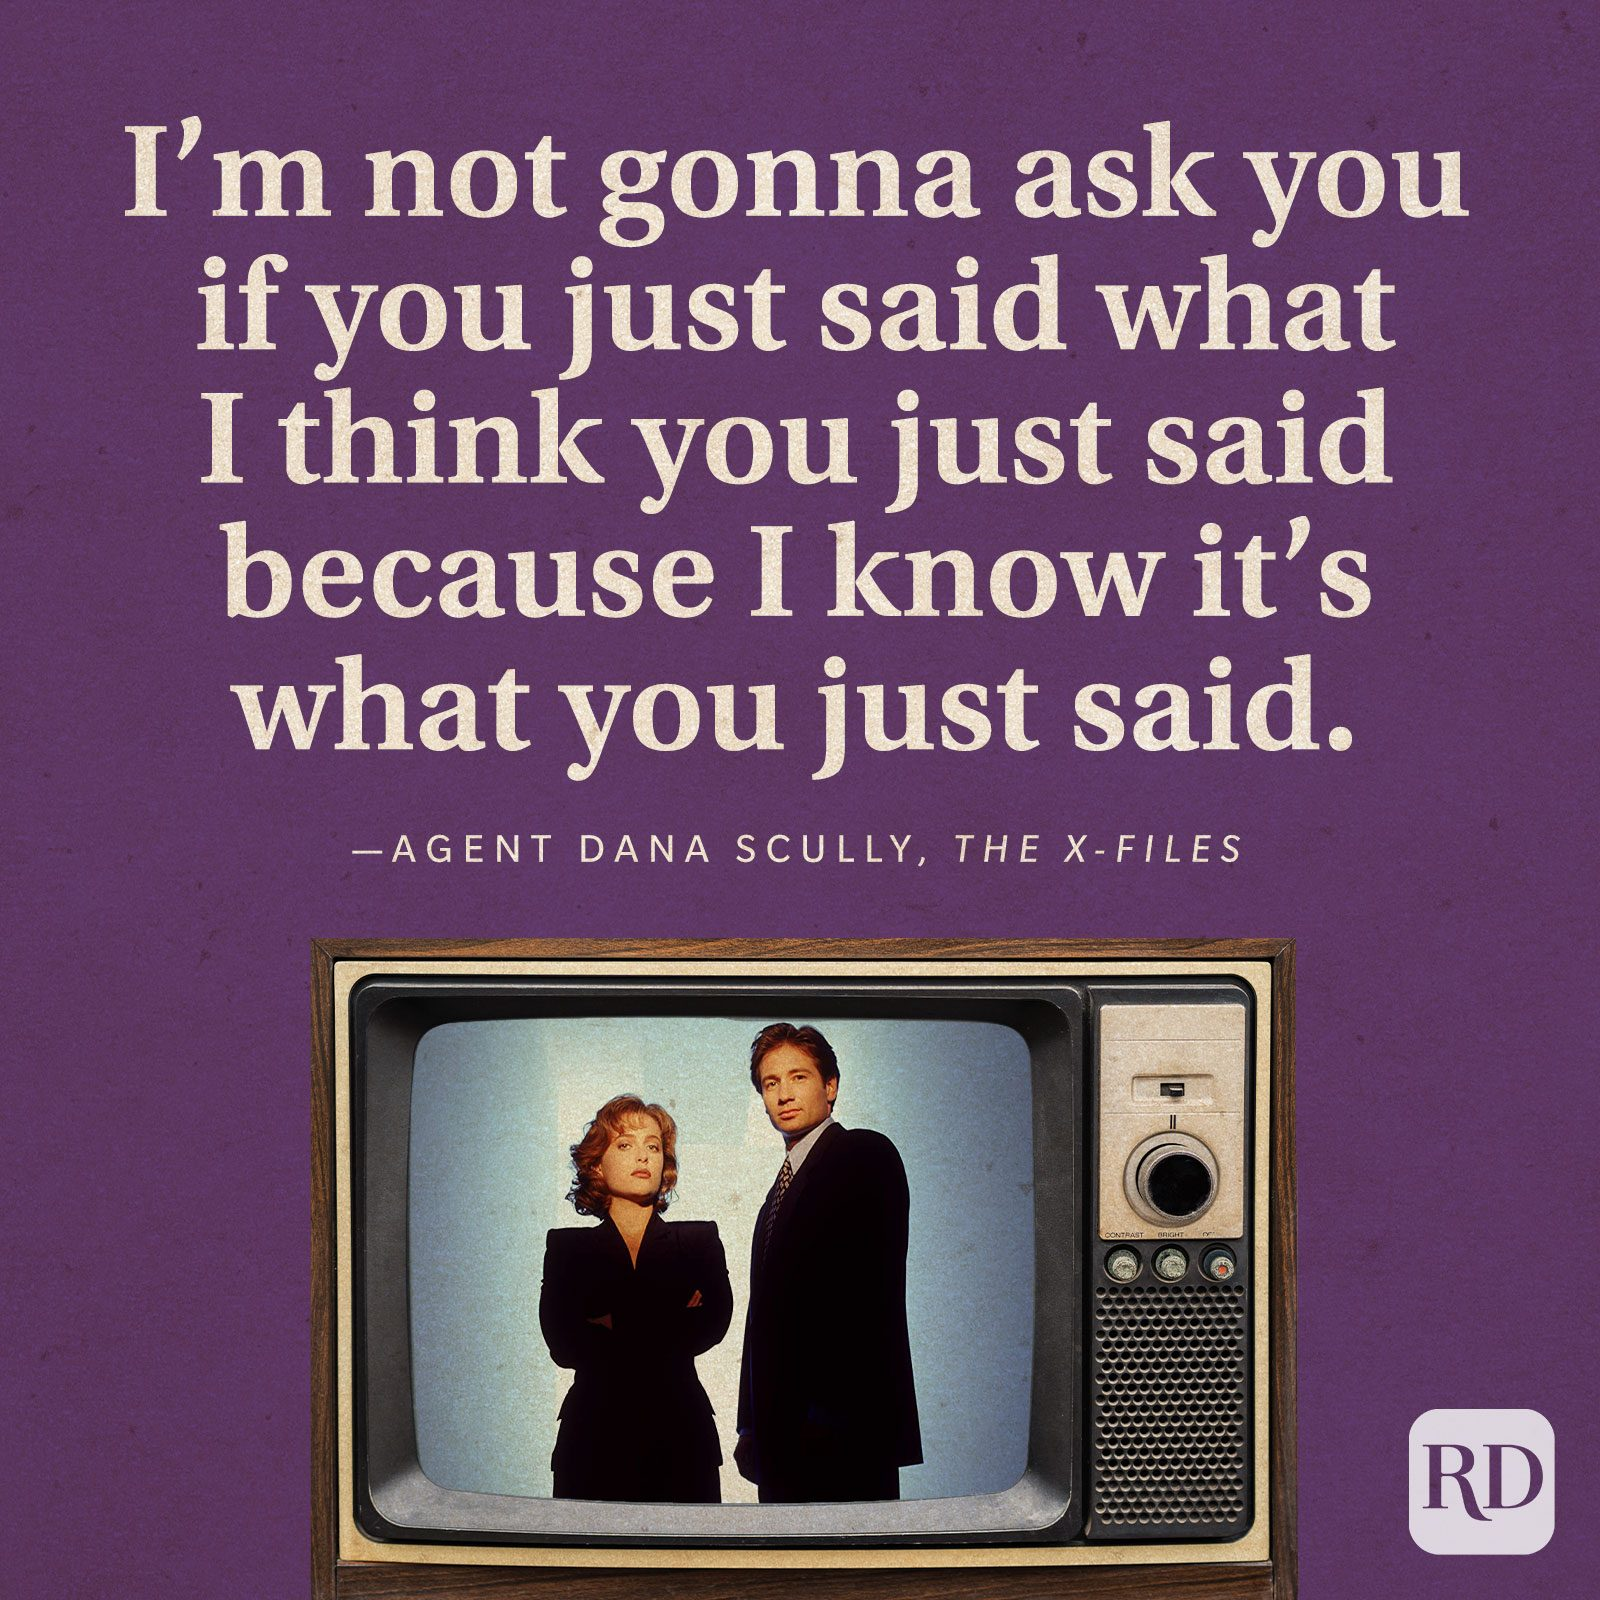 """""""I'm not gonna ask you if you just said what I think you just said because I know it's what you just said."""" -Agent Dana Scully in The X-Files."""